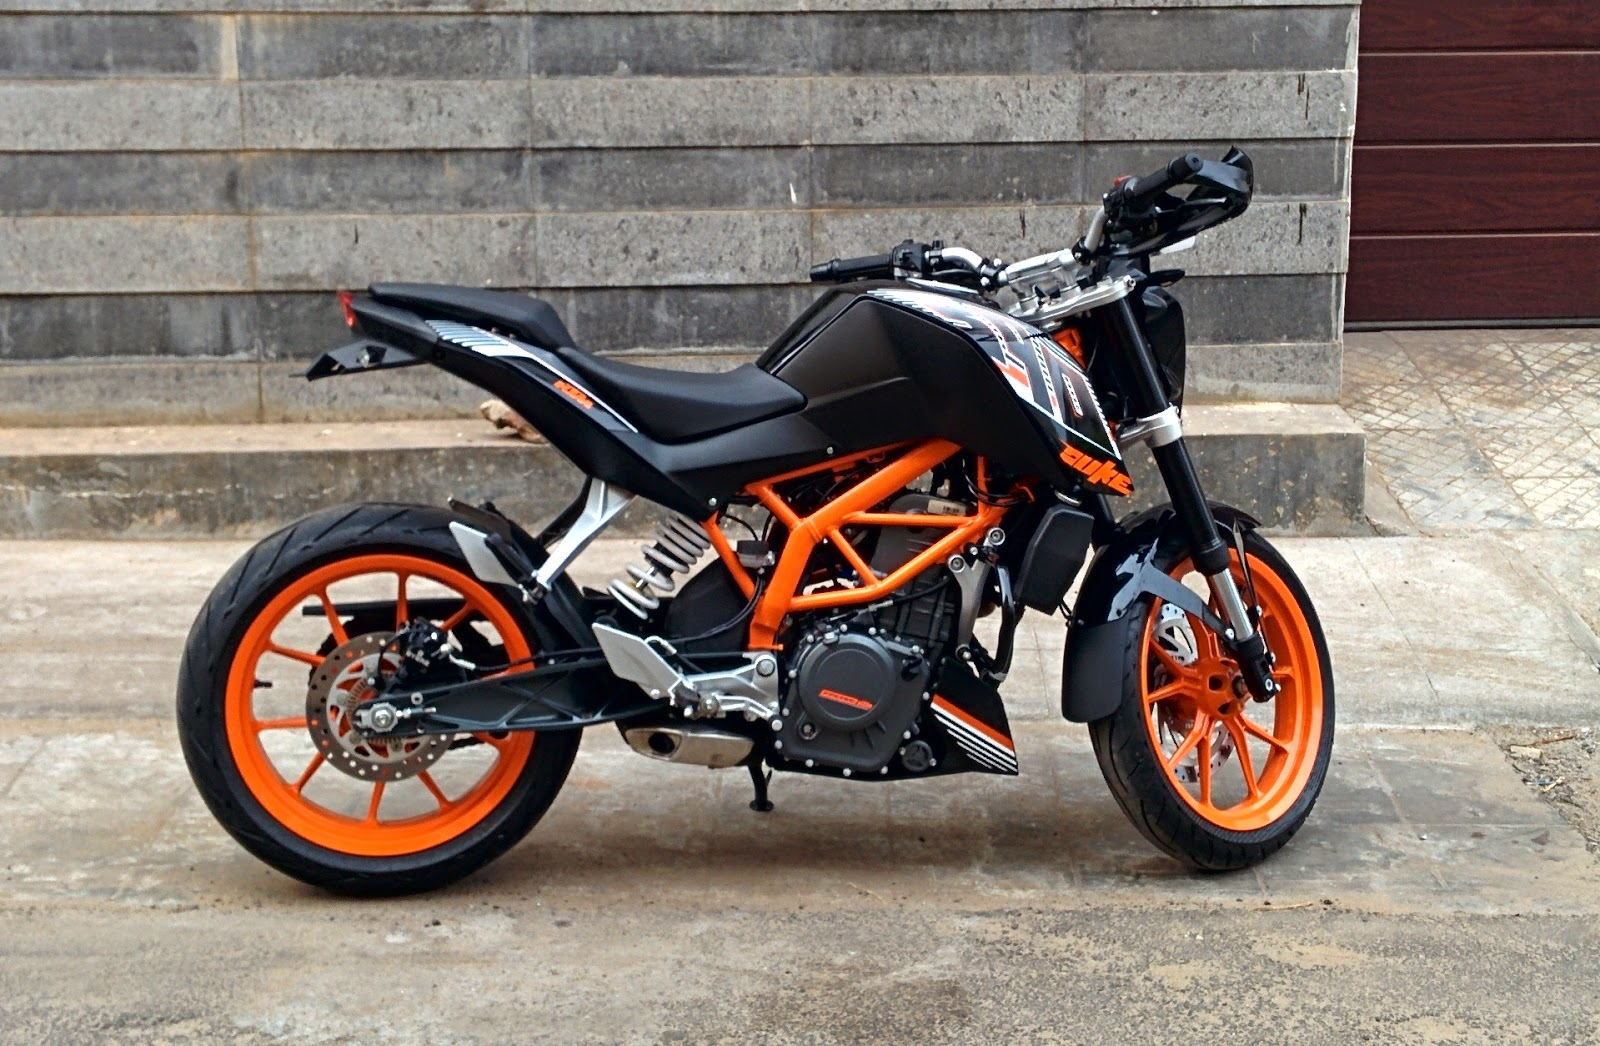 ktm 390 duke india ktm duke 390 custom tail tidy india. Black Bedroom Furniture Sets. Home Design Ideas